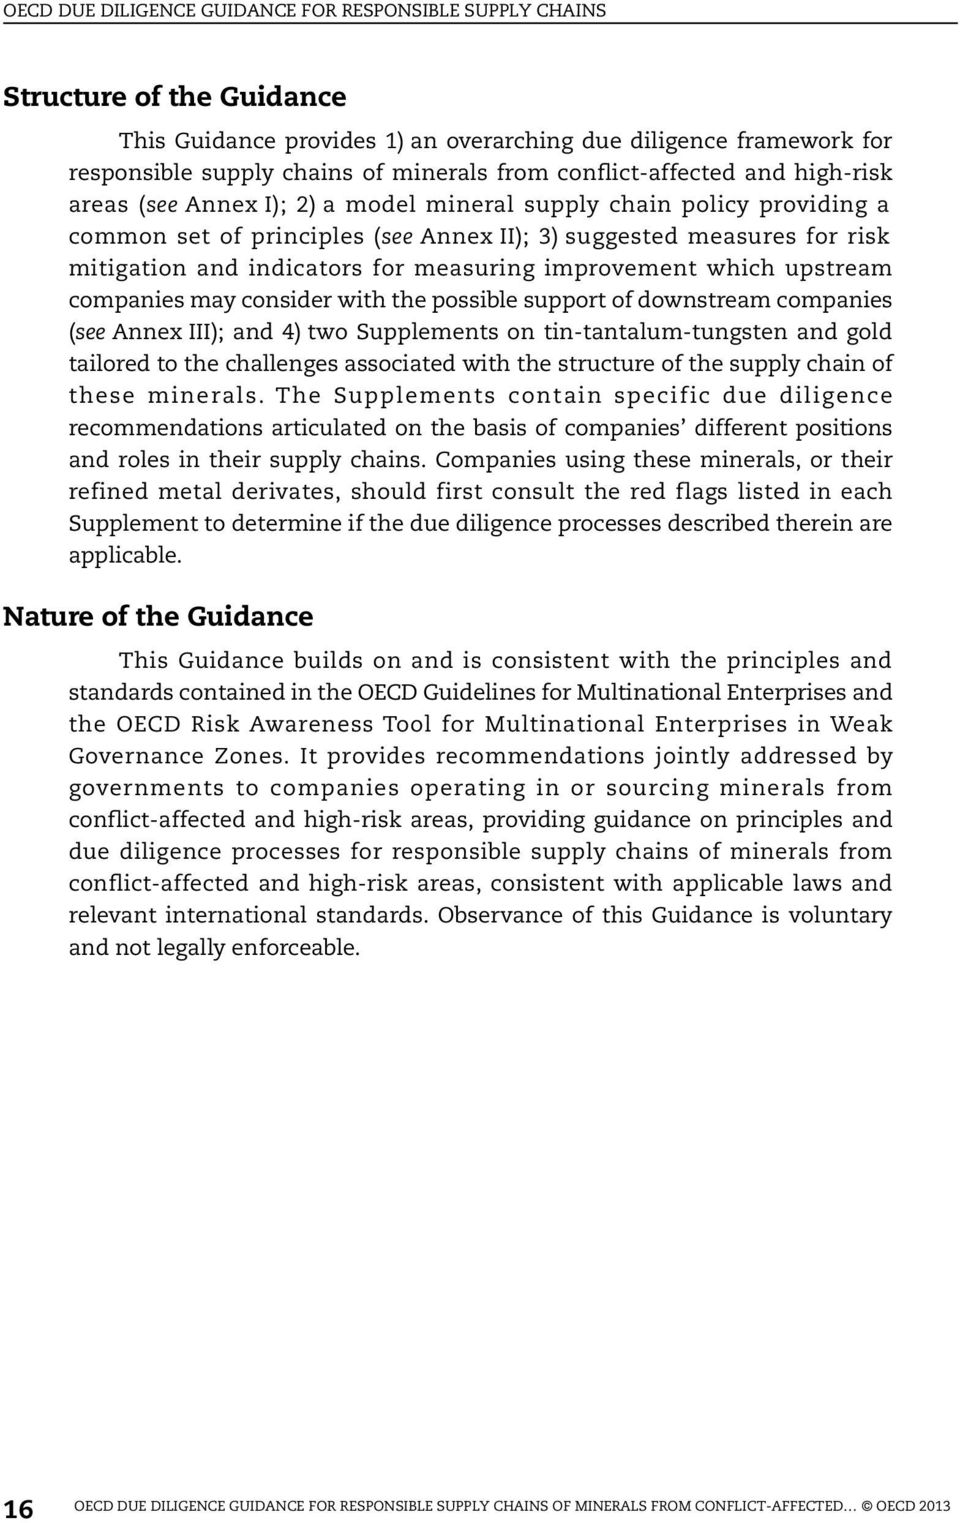 indicators for measuring improvement which upstream companies may consider with the possible support of downstream companies (see Annex III); and 4) two Supplements on tin-tantalum-tungsten and gold